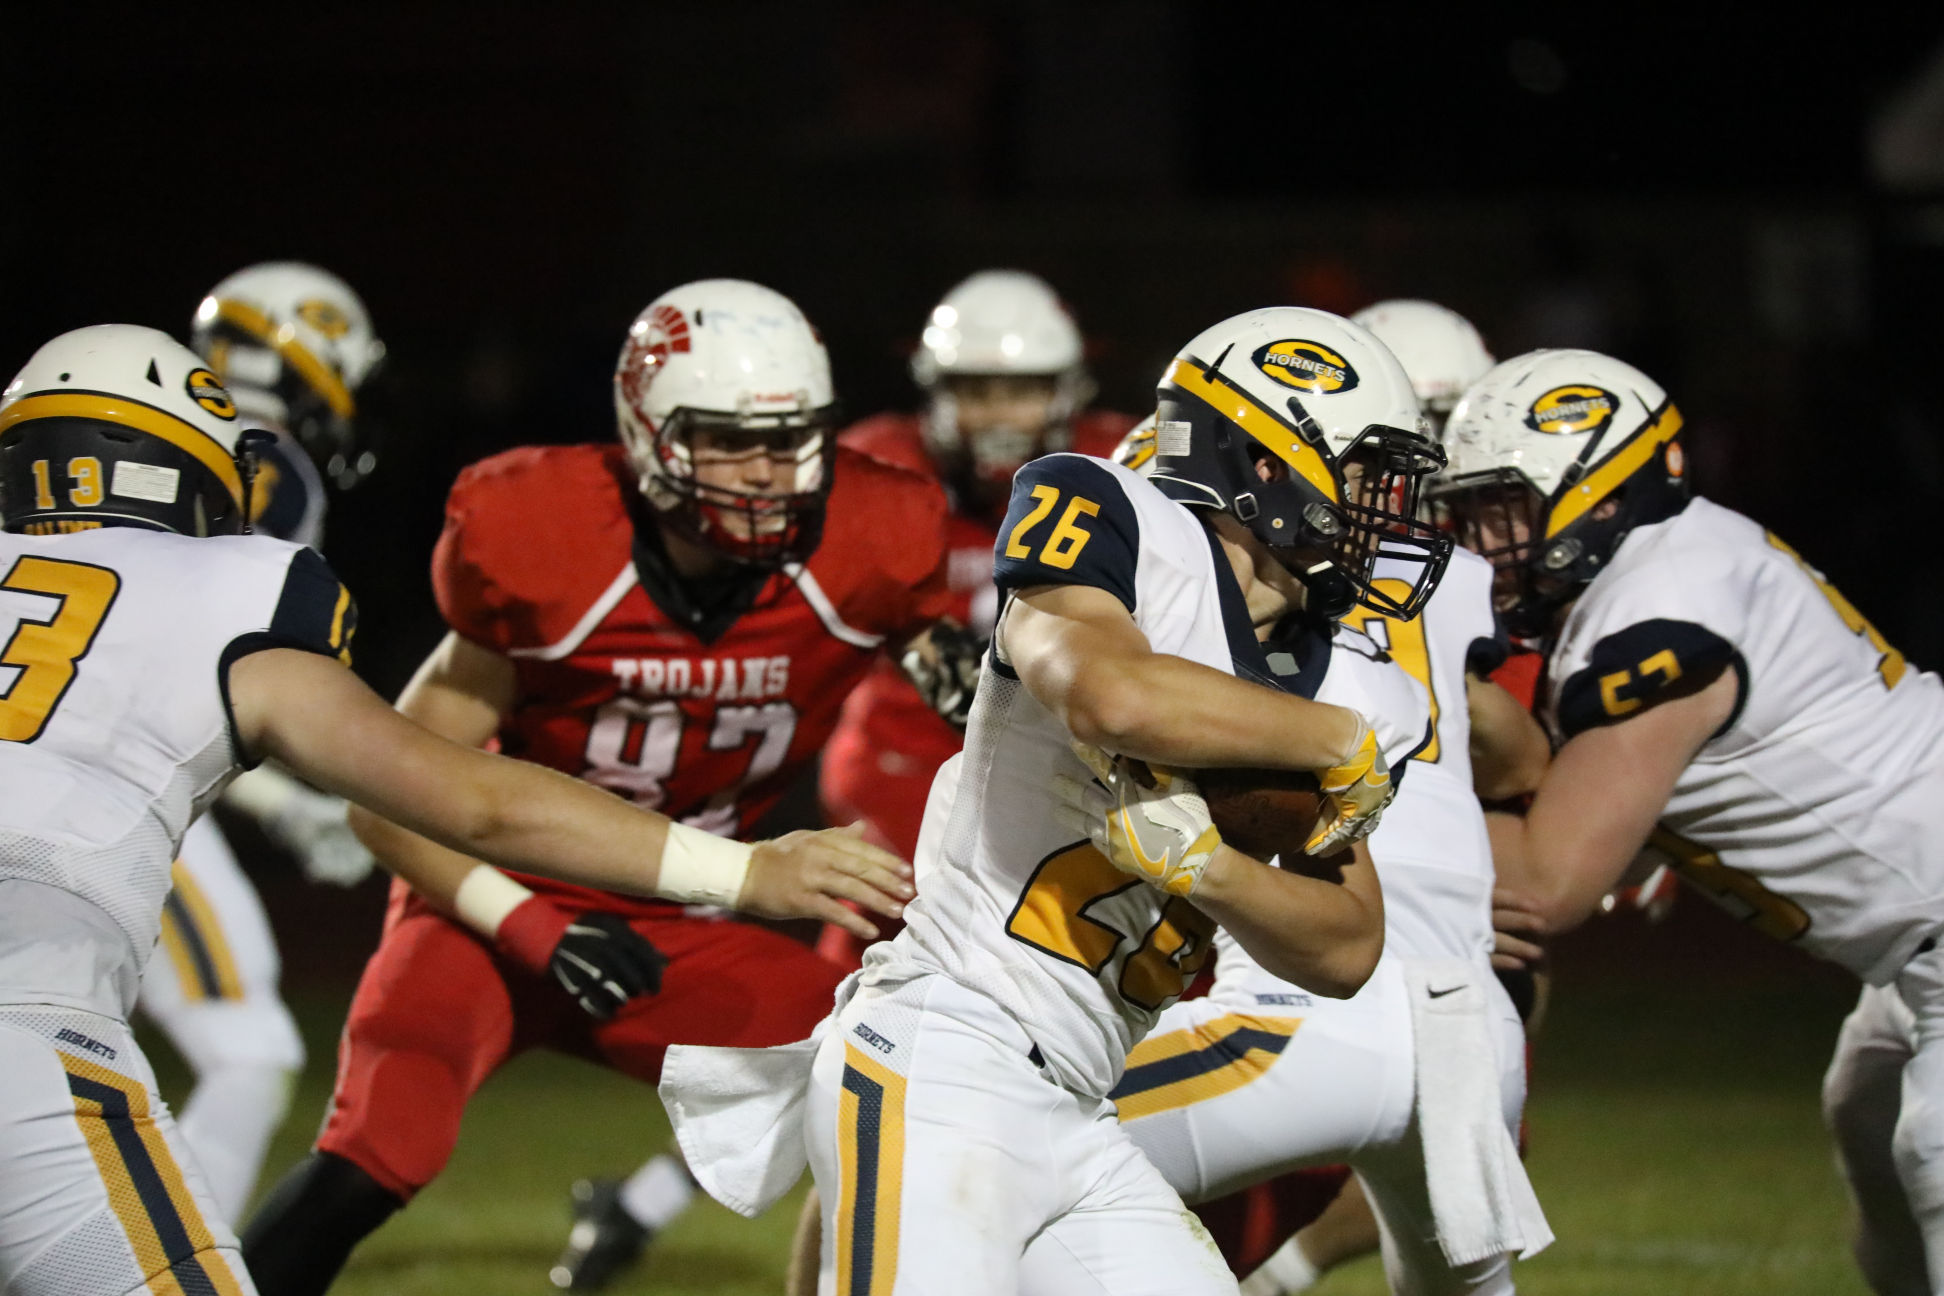 @TheSalinePost: Saline and Monroe Battle for SEC Red Championship